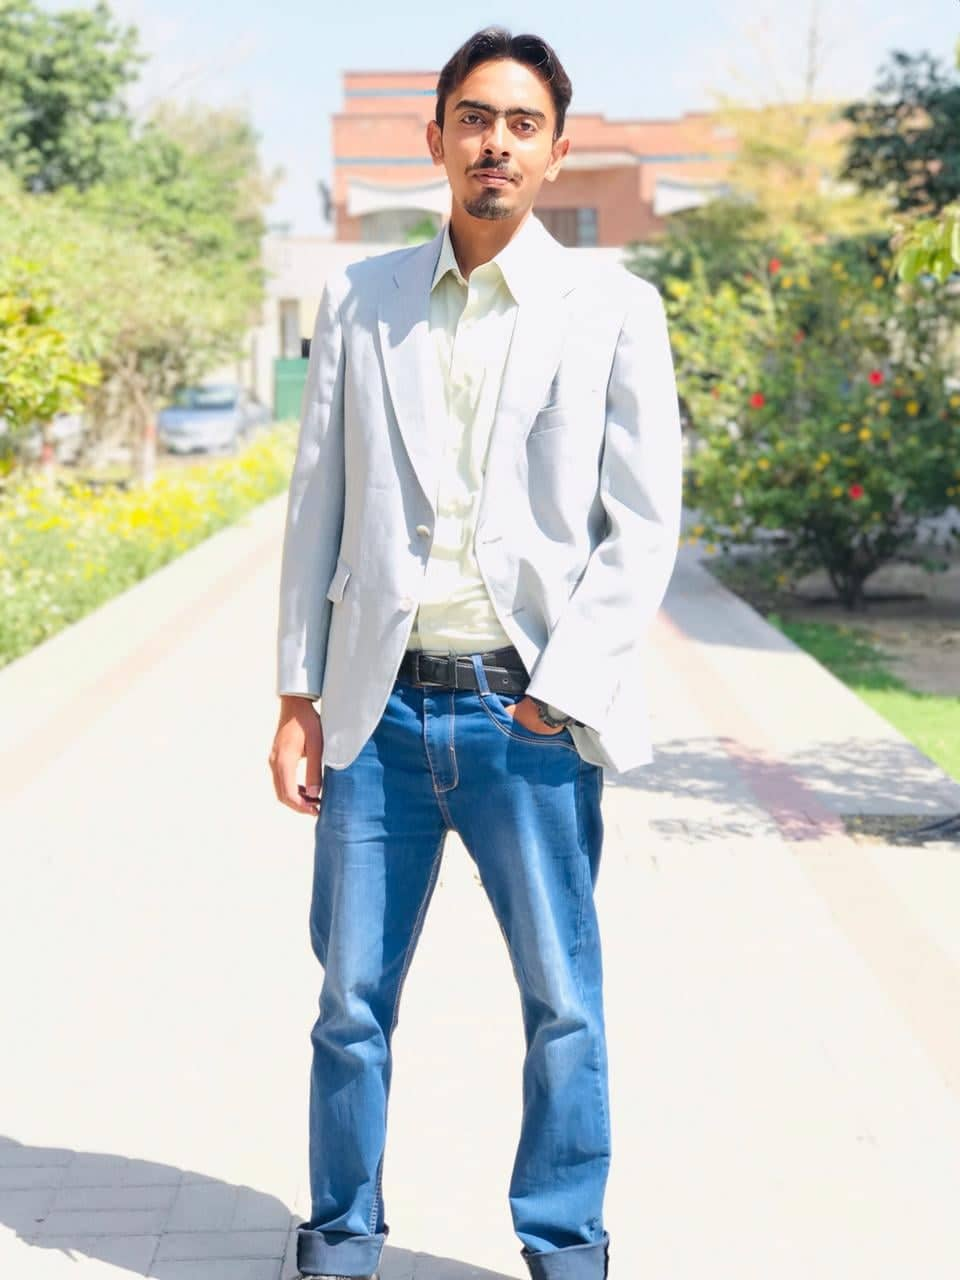 Muhammad Usman Haider Flex, Management, Education & Tutoring, Arduino, Electrical Engineering, Power Generation, Schematics, Resumes, Article Rewriting, Internet Of Things (IoT)